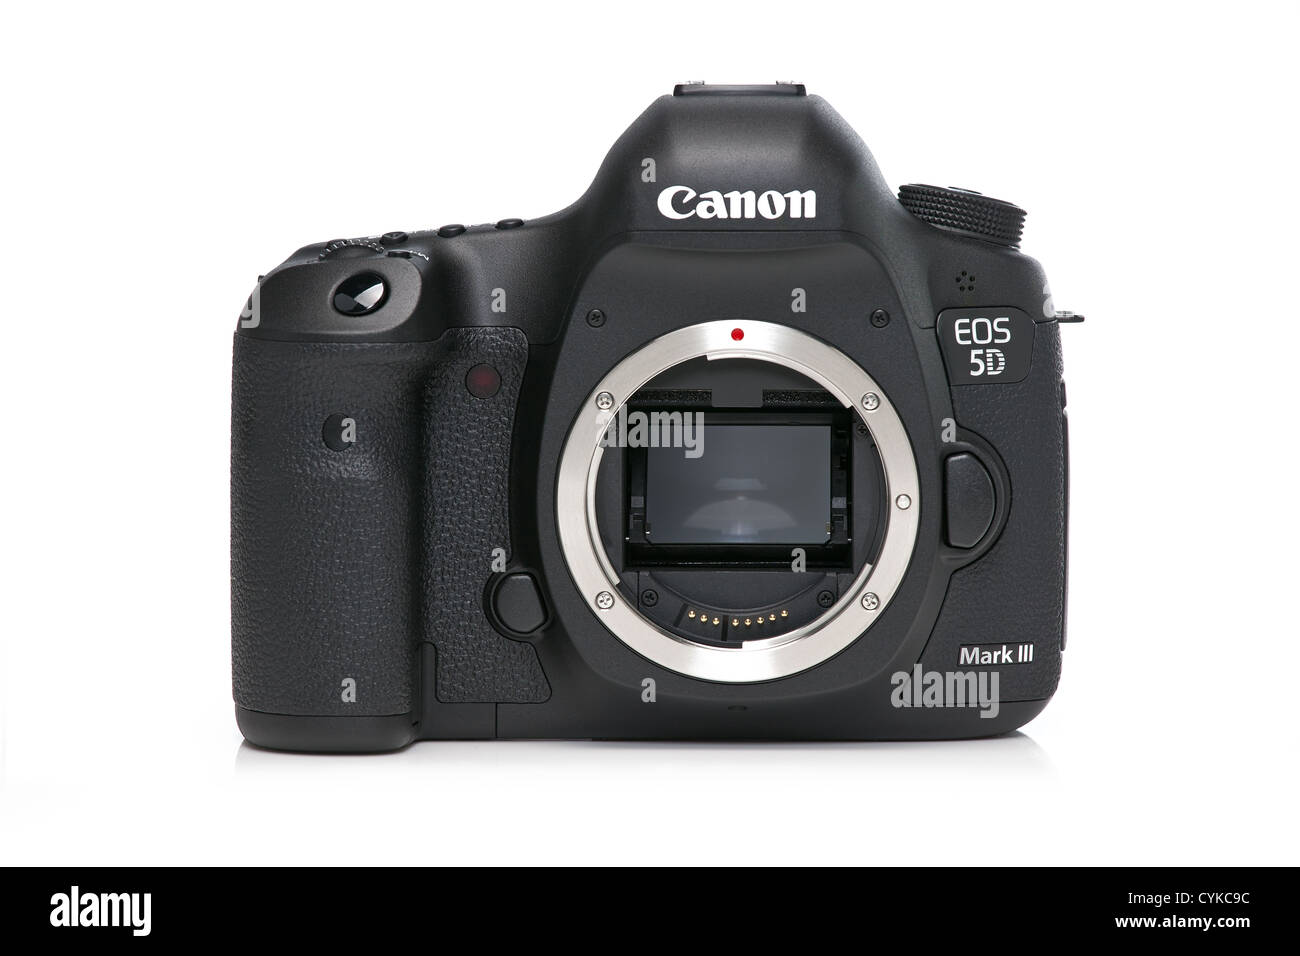 Camera, canon 5d mark III mk 3  on white background with reflection photographed in studio - Stock Image